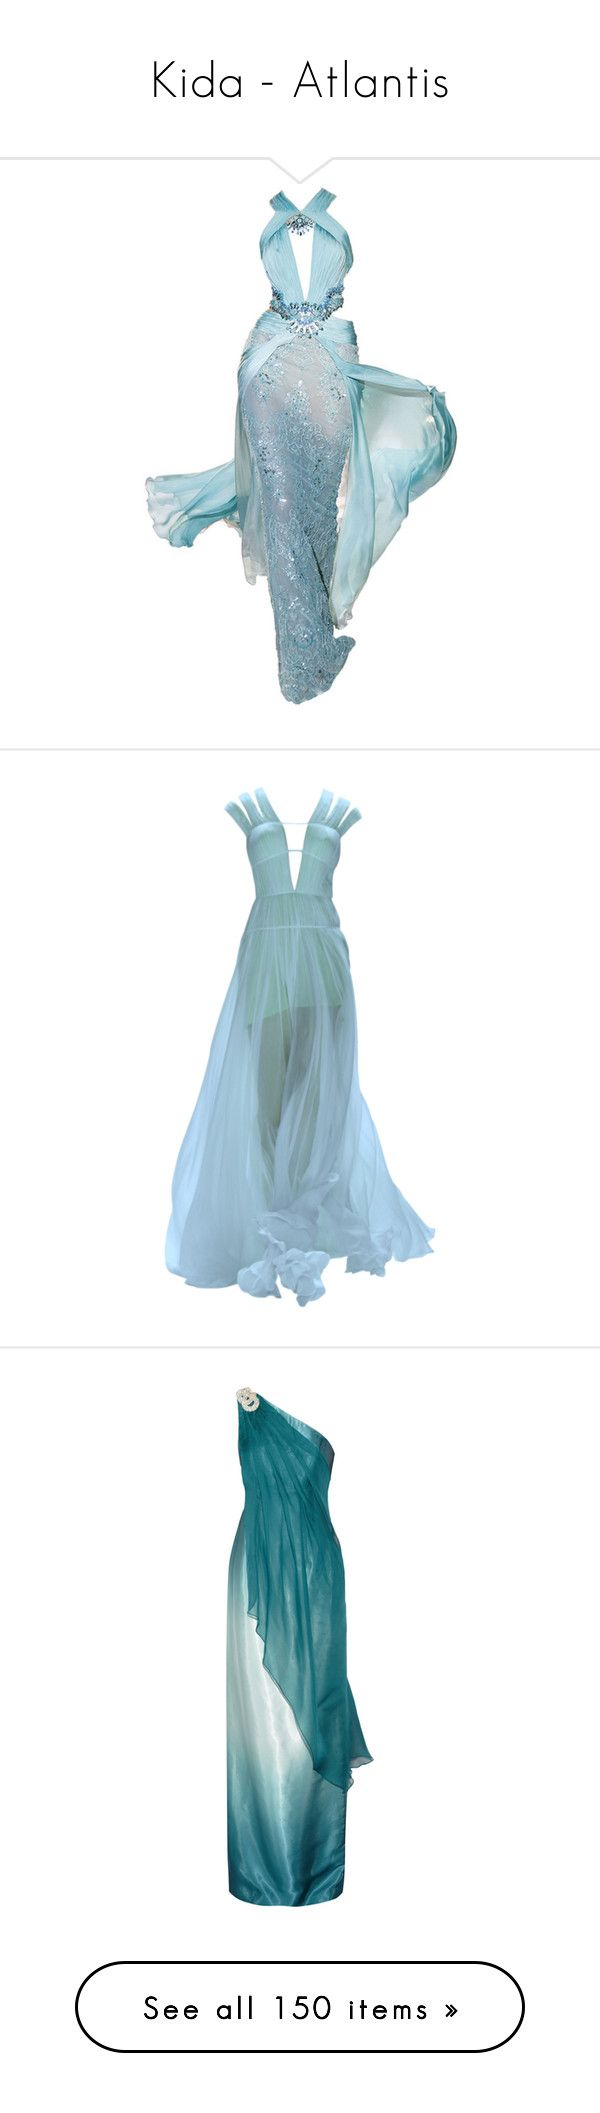 """""""Kida - Atlantis"""" by disneydressing ❤ liked on Polyvore featuring dresses, gowns, long dresses, blue, vestidos, atlantis, blue dress, blue evening dresses, tadashi shoji and blue evening gown"""